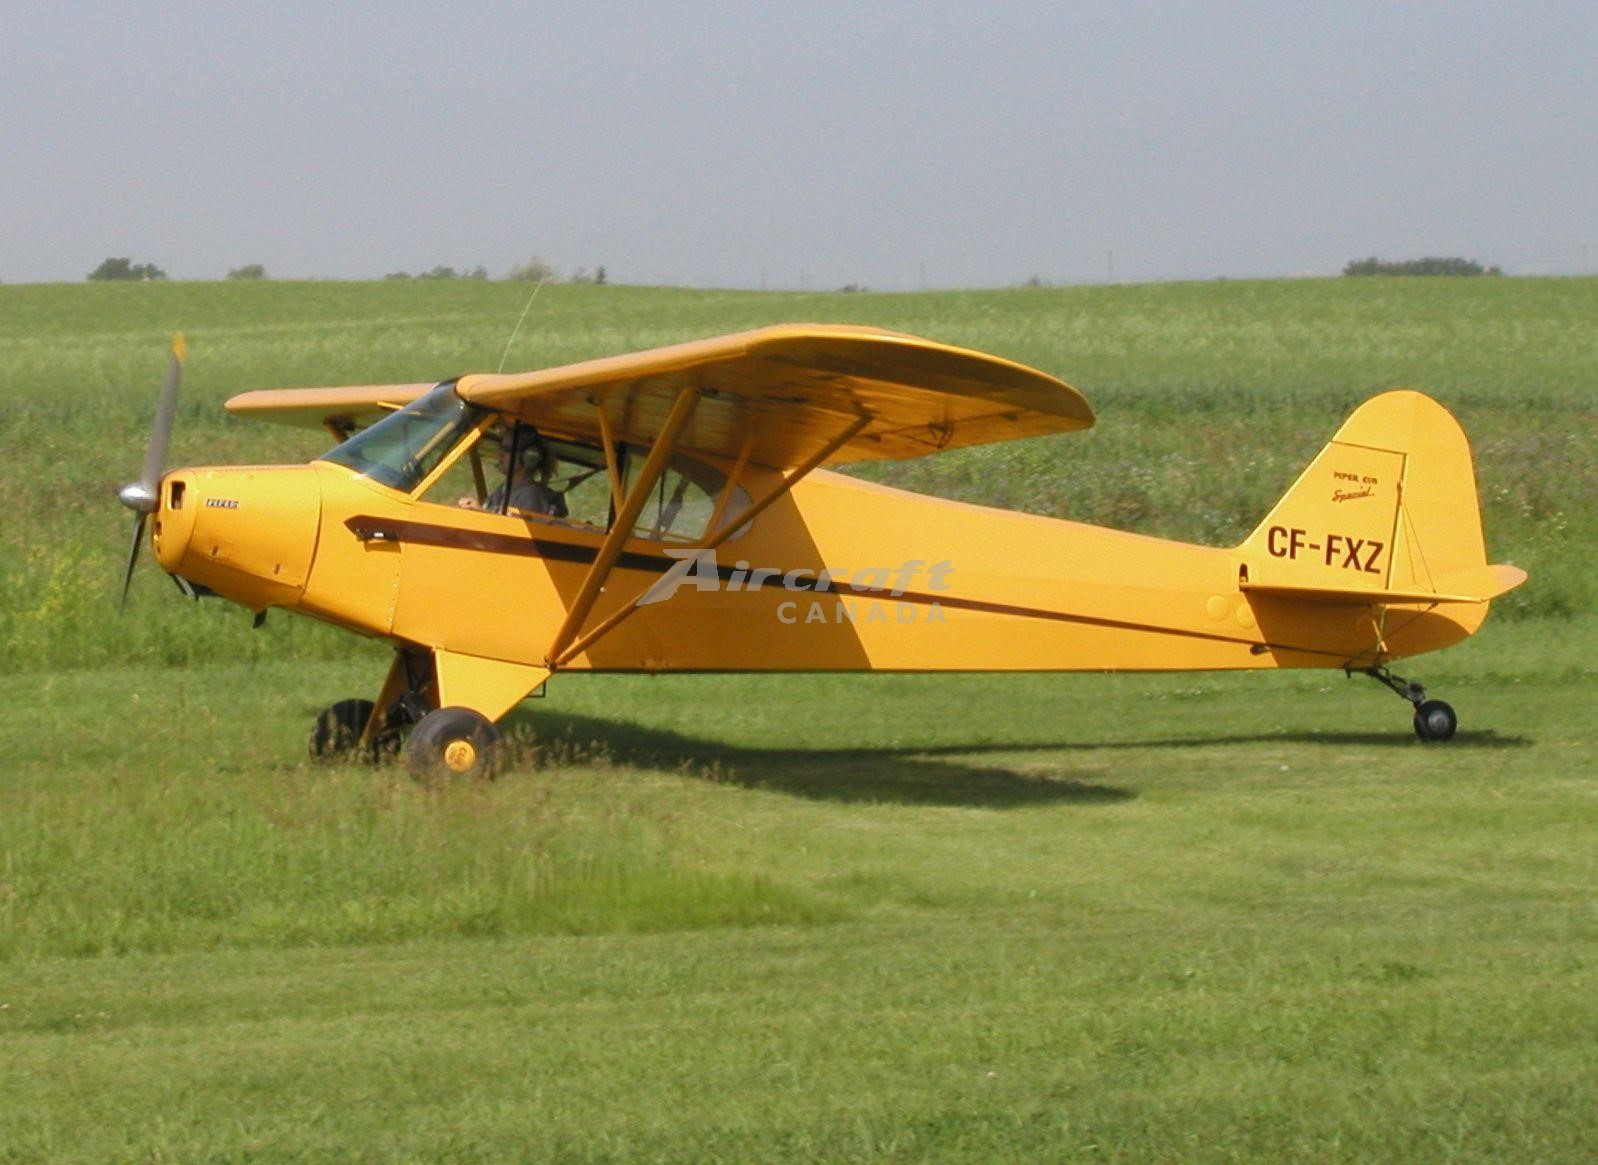 Globalair.com | Aircraft and airplanes for sale, Buy, Sell New and Preowned Worldwide  Globalair.com |...